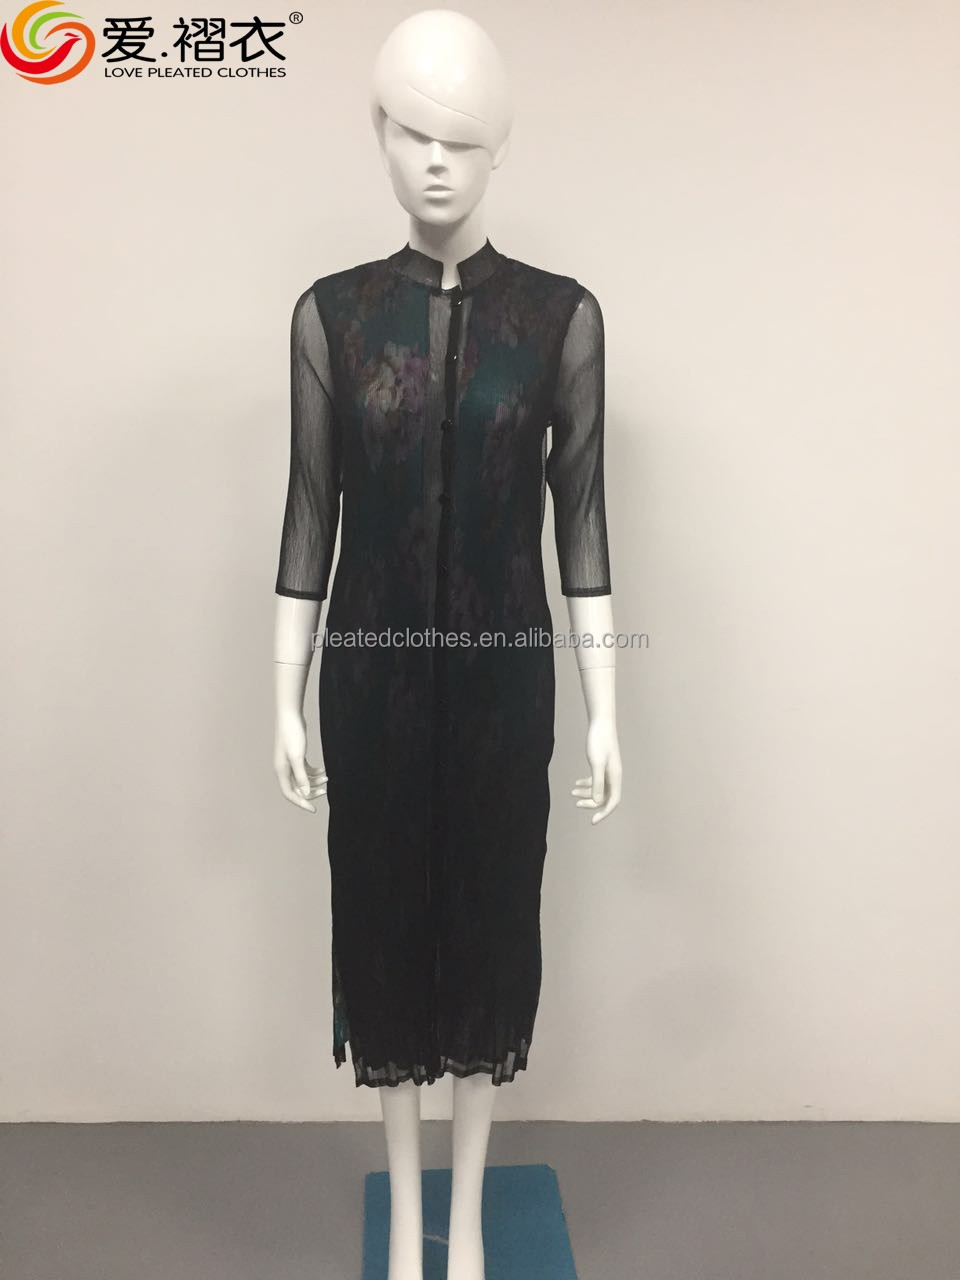 women traditional chinese dress with button pirnt dress clothes elegant